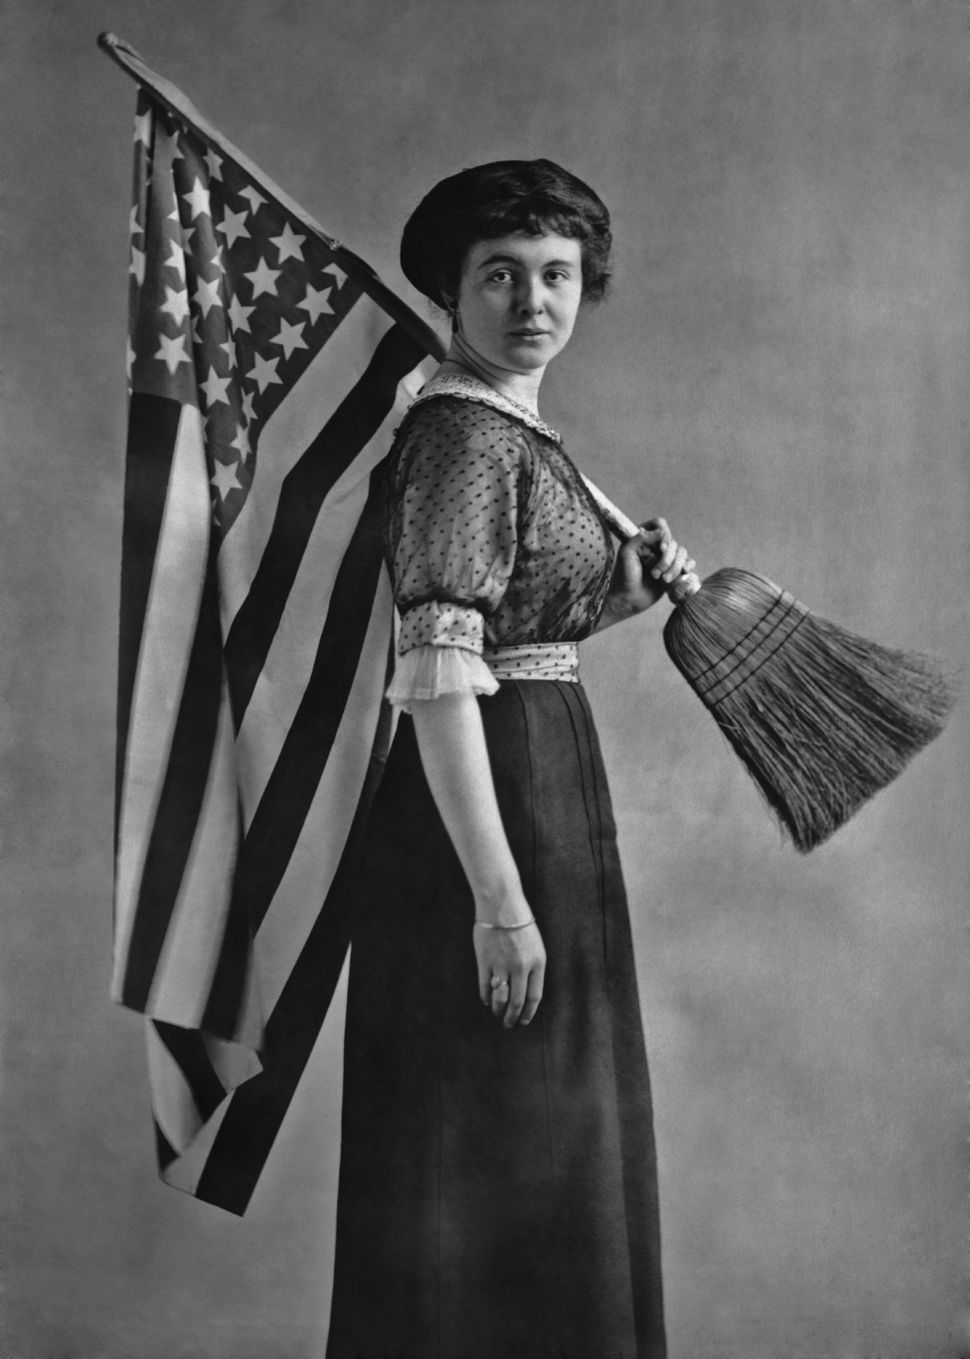 An American suffragette carries a U.S. flag attached to a broom handle.